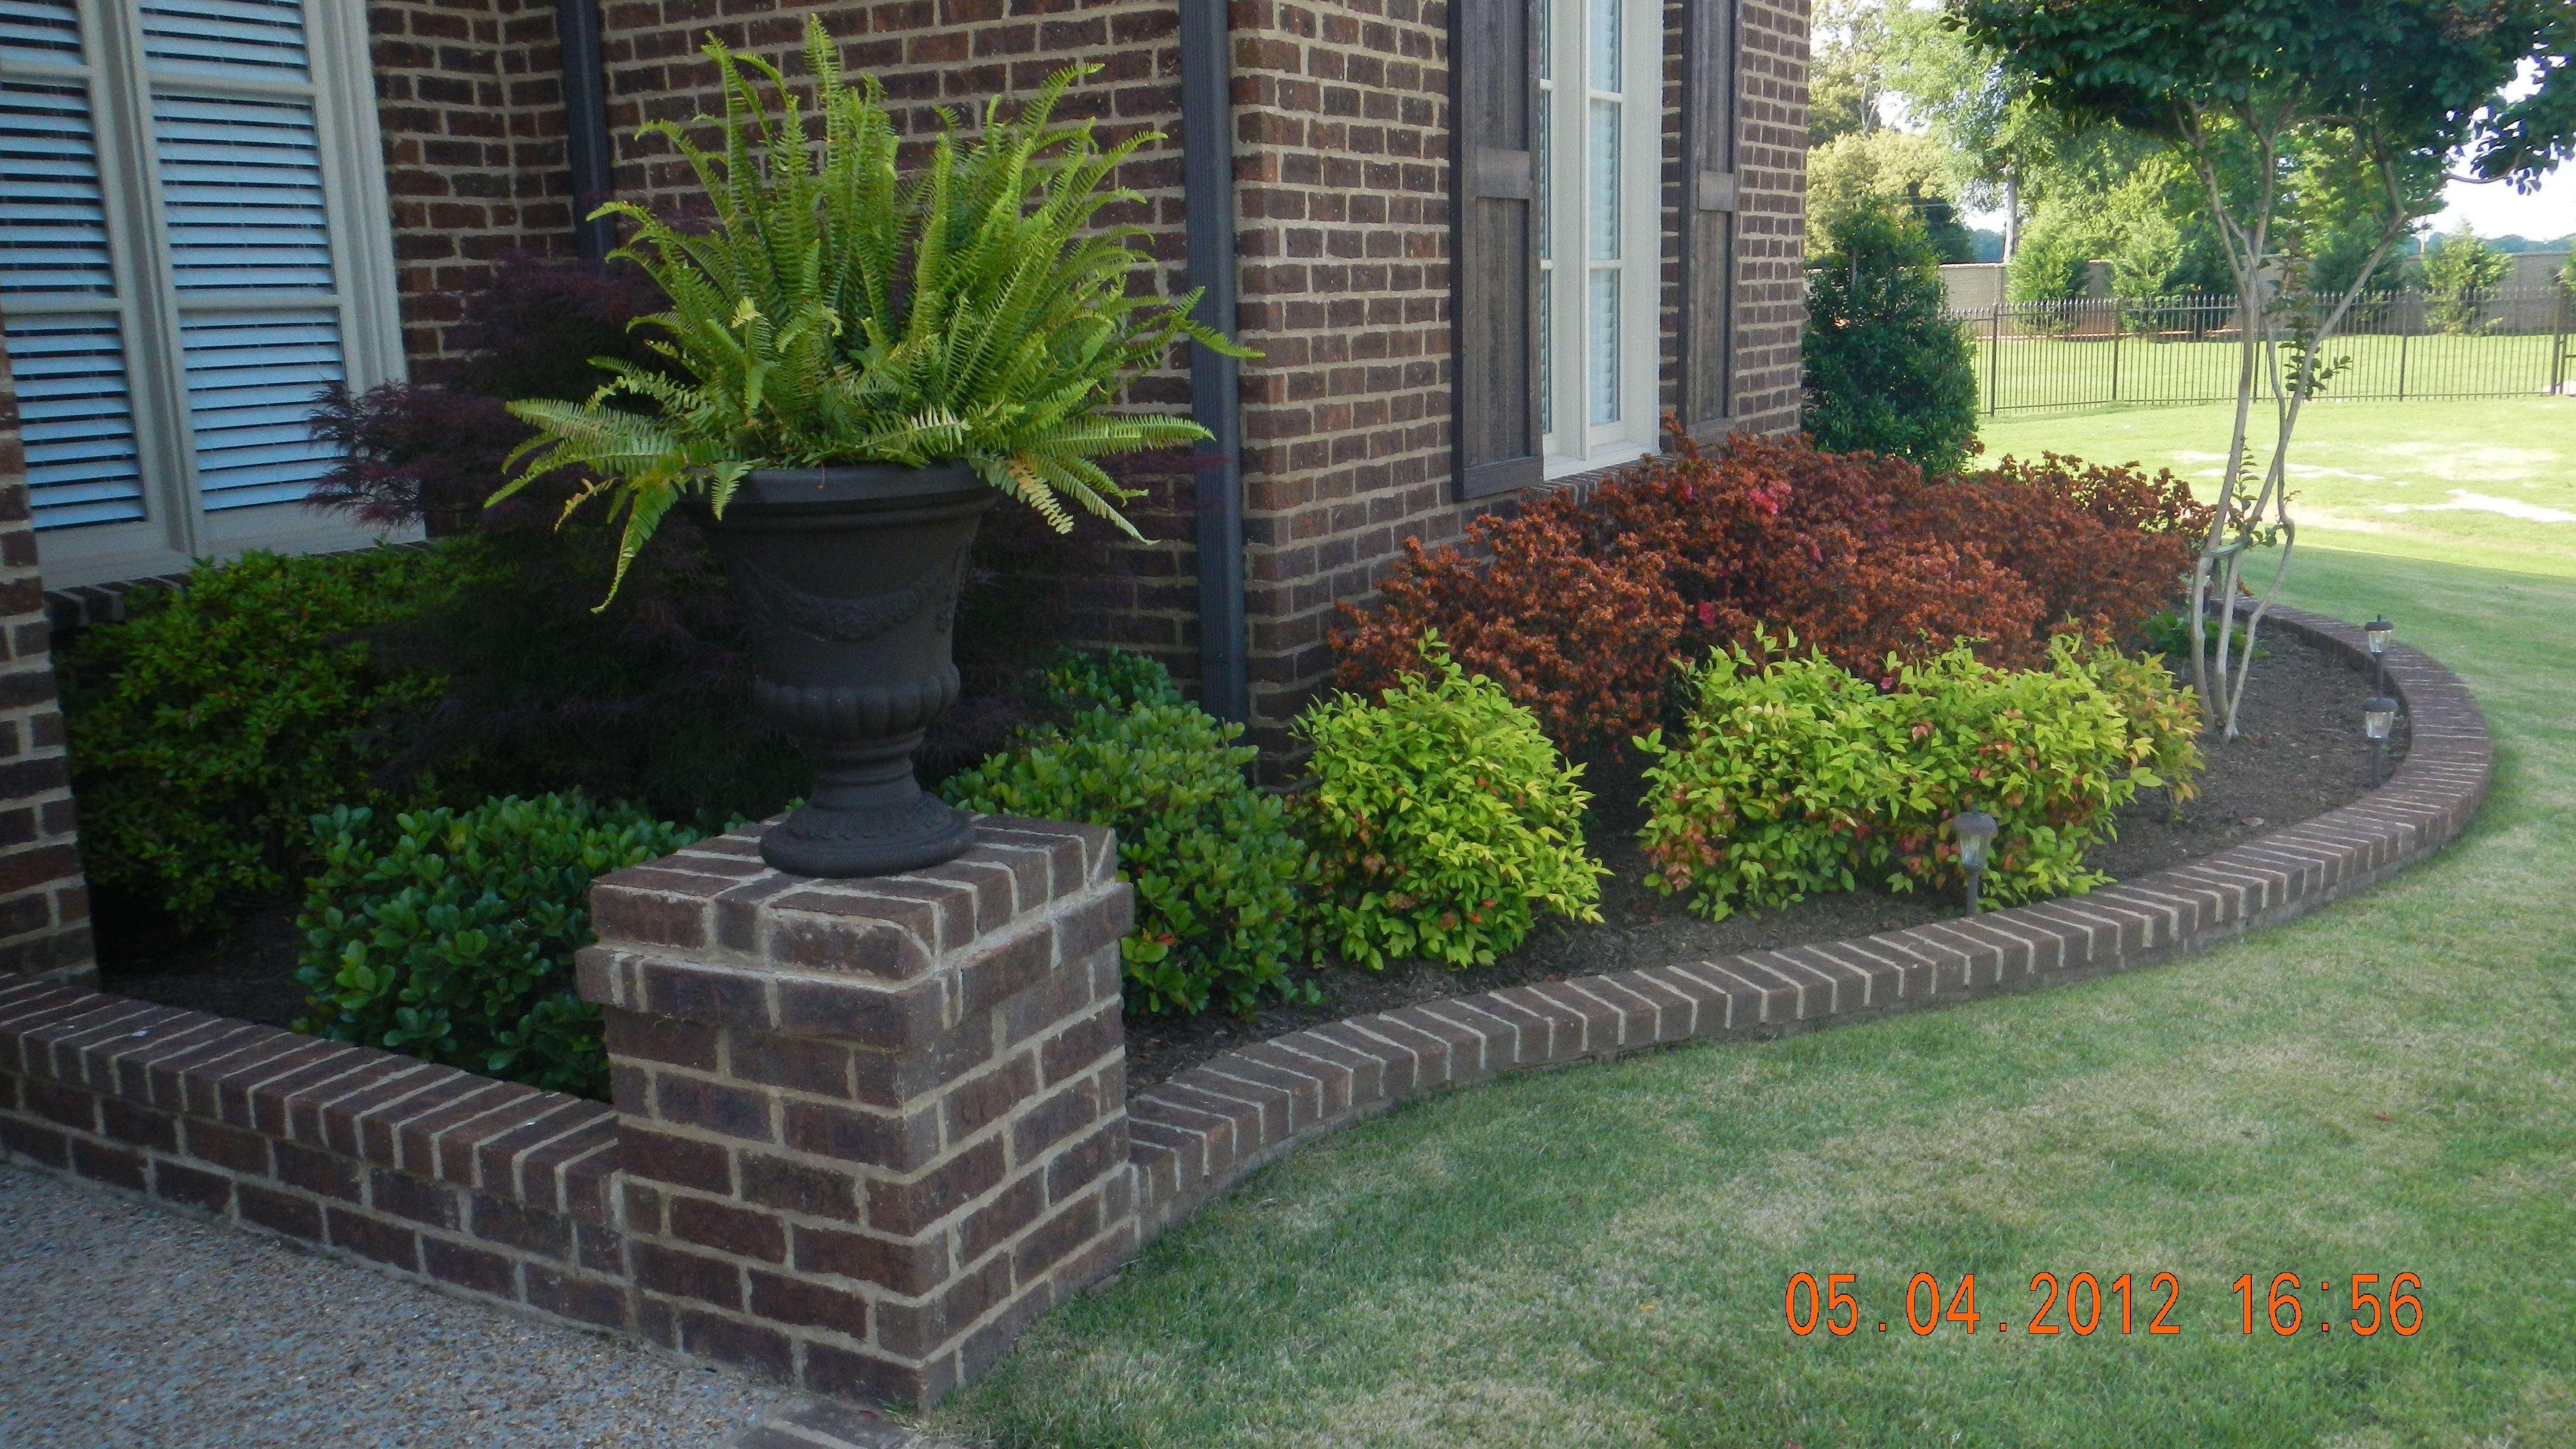 Best Of Ront Yard Retaining Wall Ideas Perfect For Your Front House Front Yard Plants Brick Garden Edging Front Landscaping